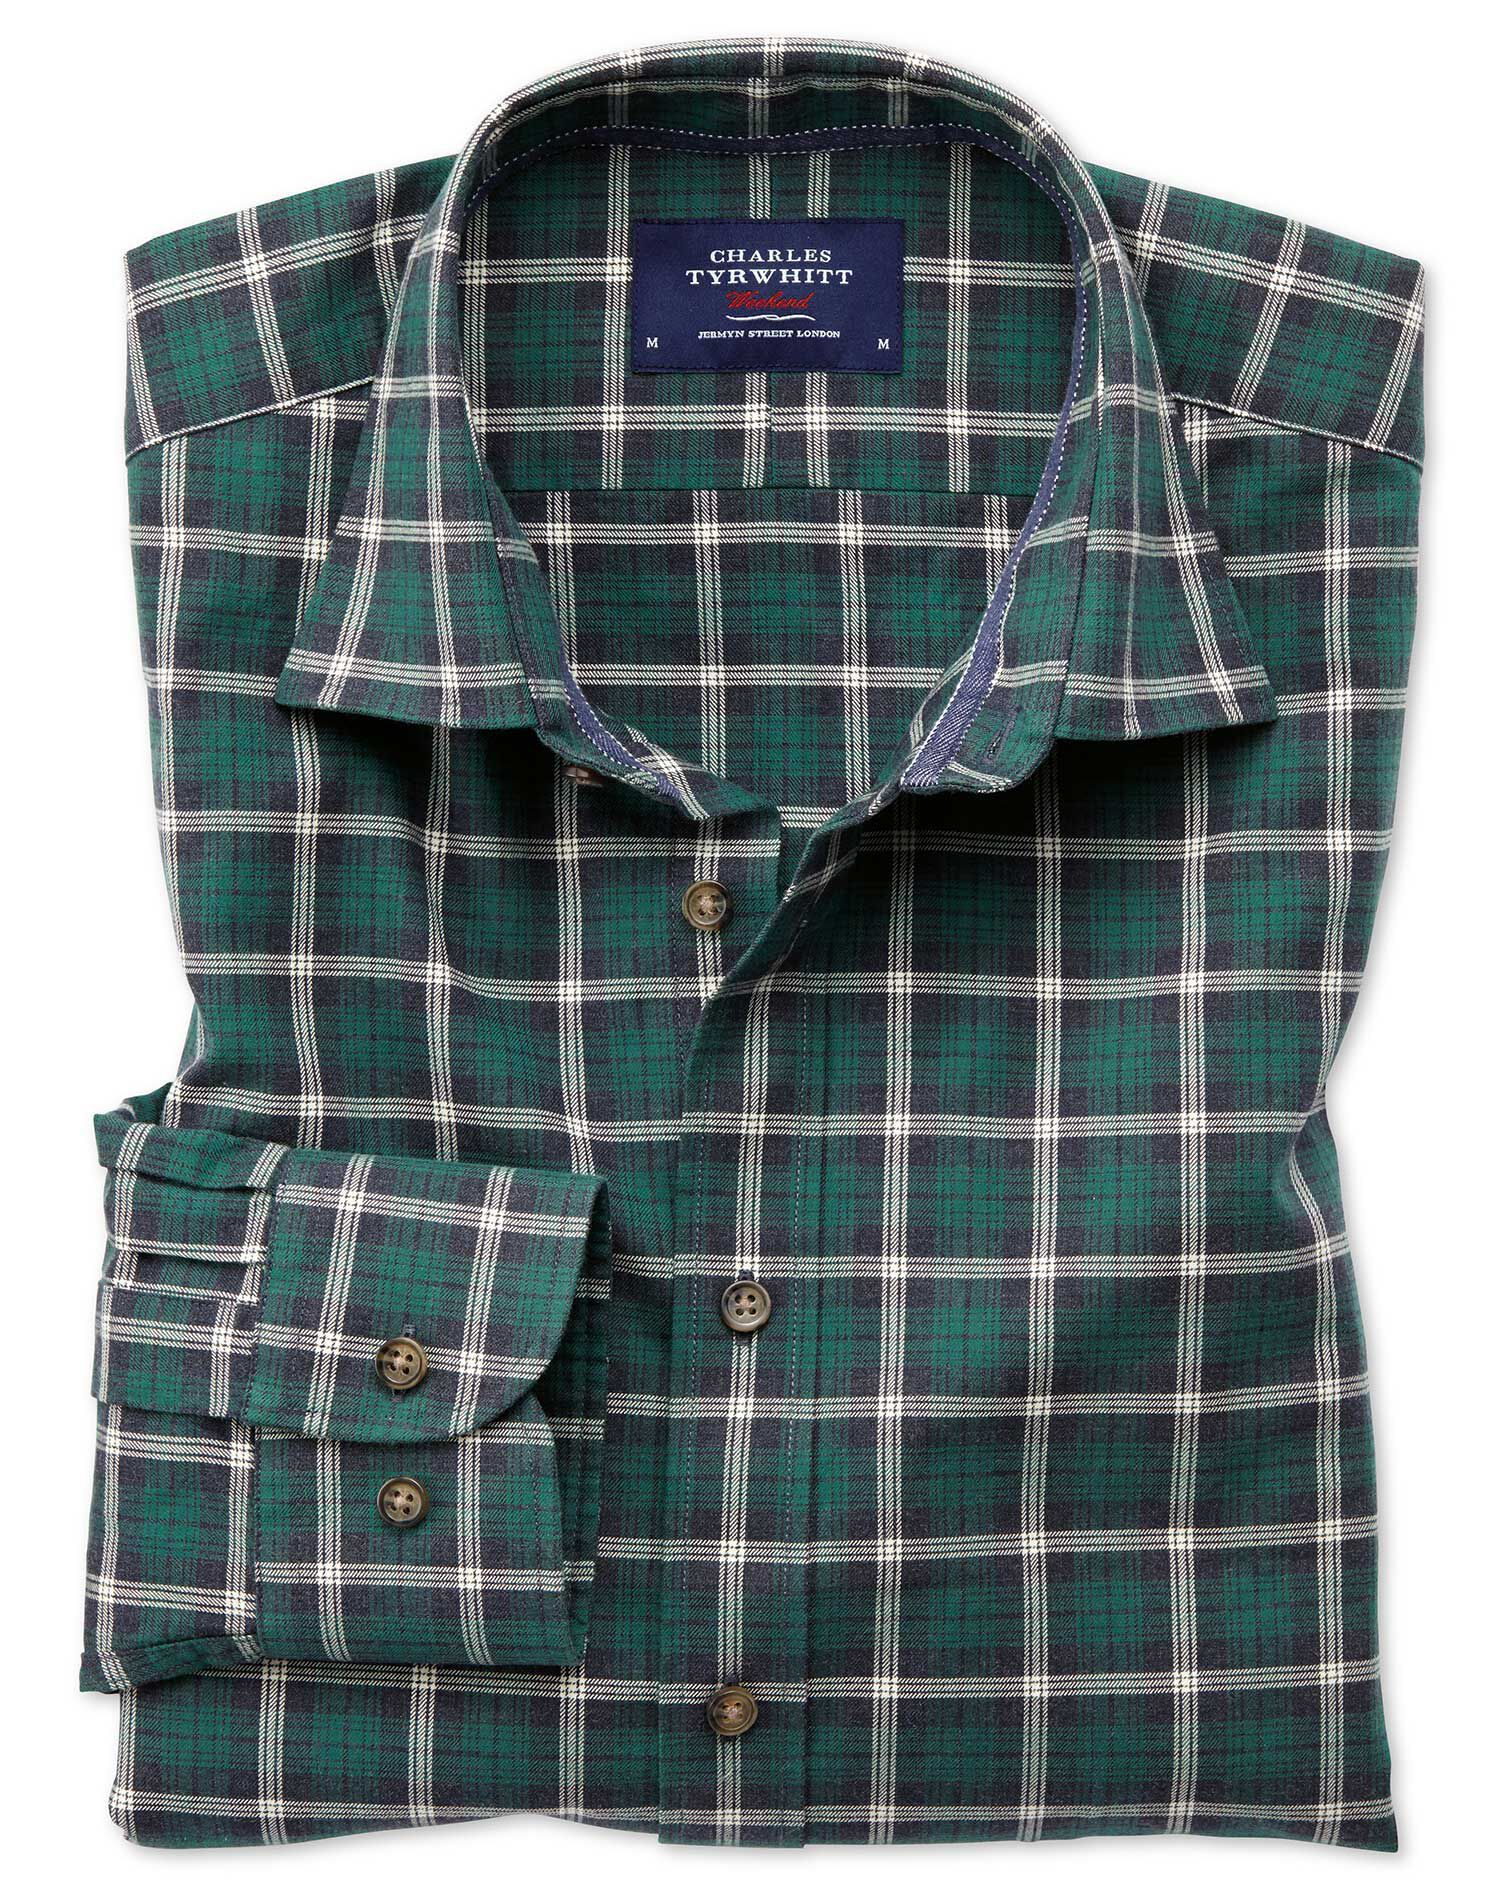 Slim Fit Heather Tartan Navy Blue and Green Check Cotton Shirt Single Cuff Size Small by Charles Tyr